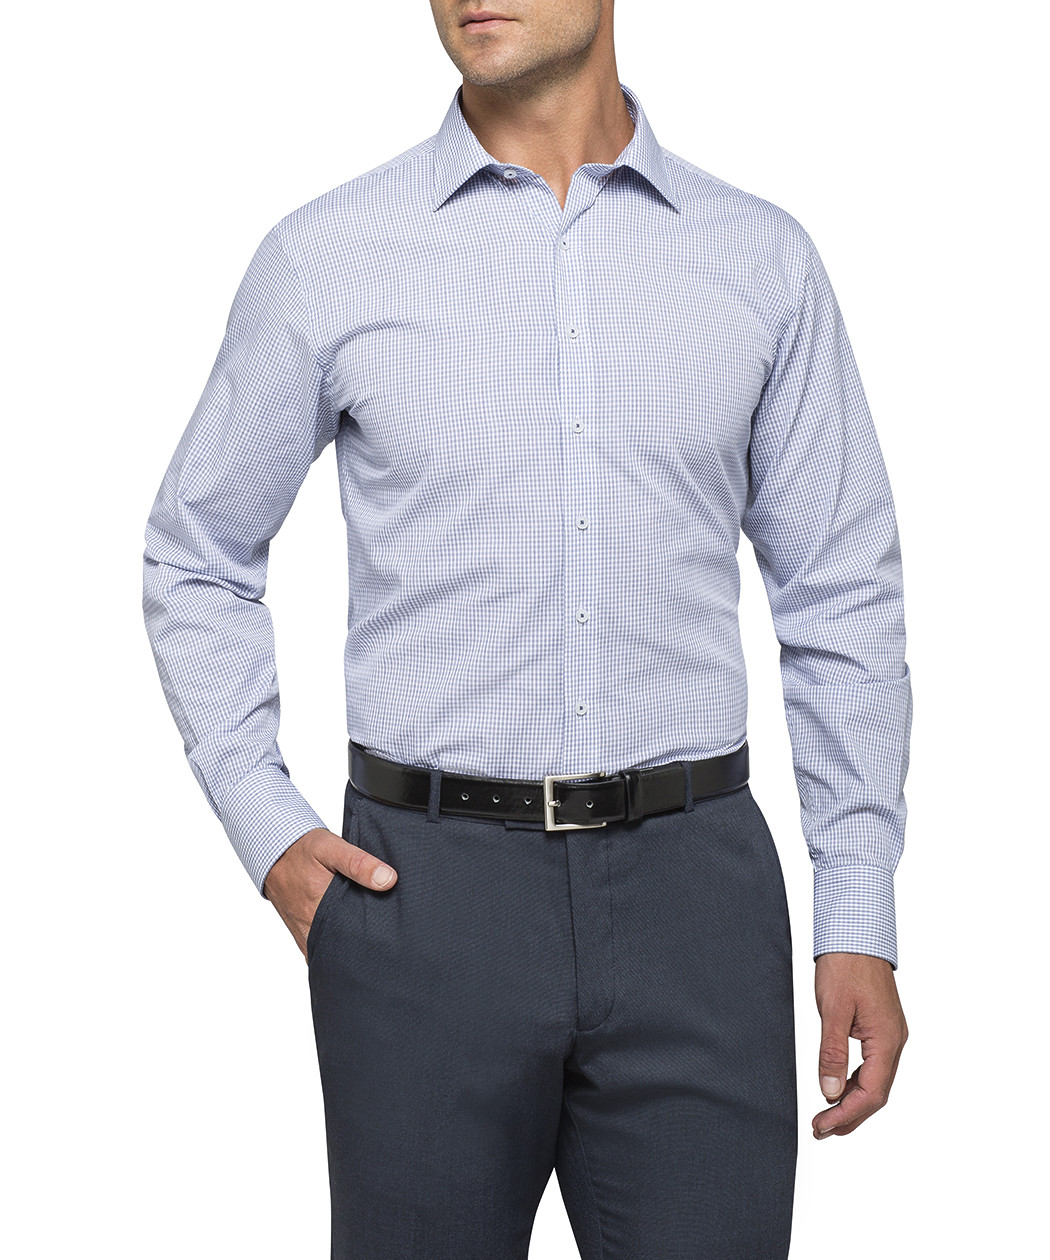 euro tailored fit shirt blue check van heusen business